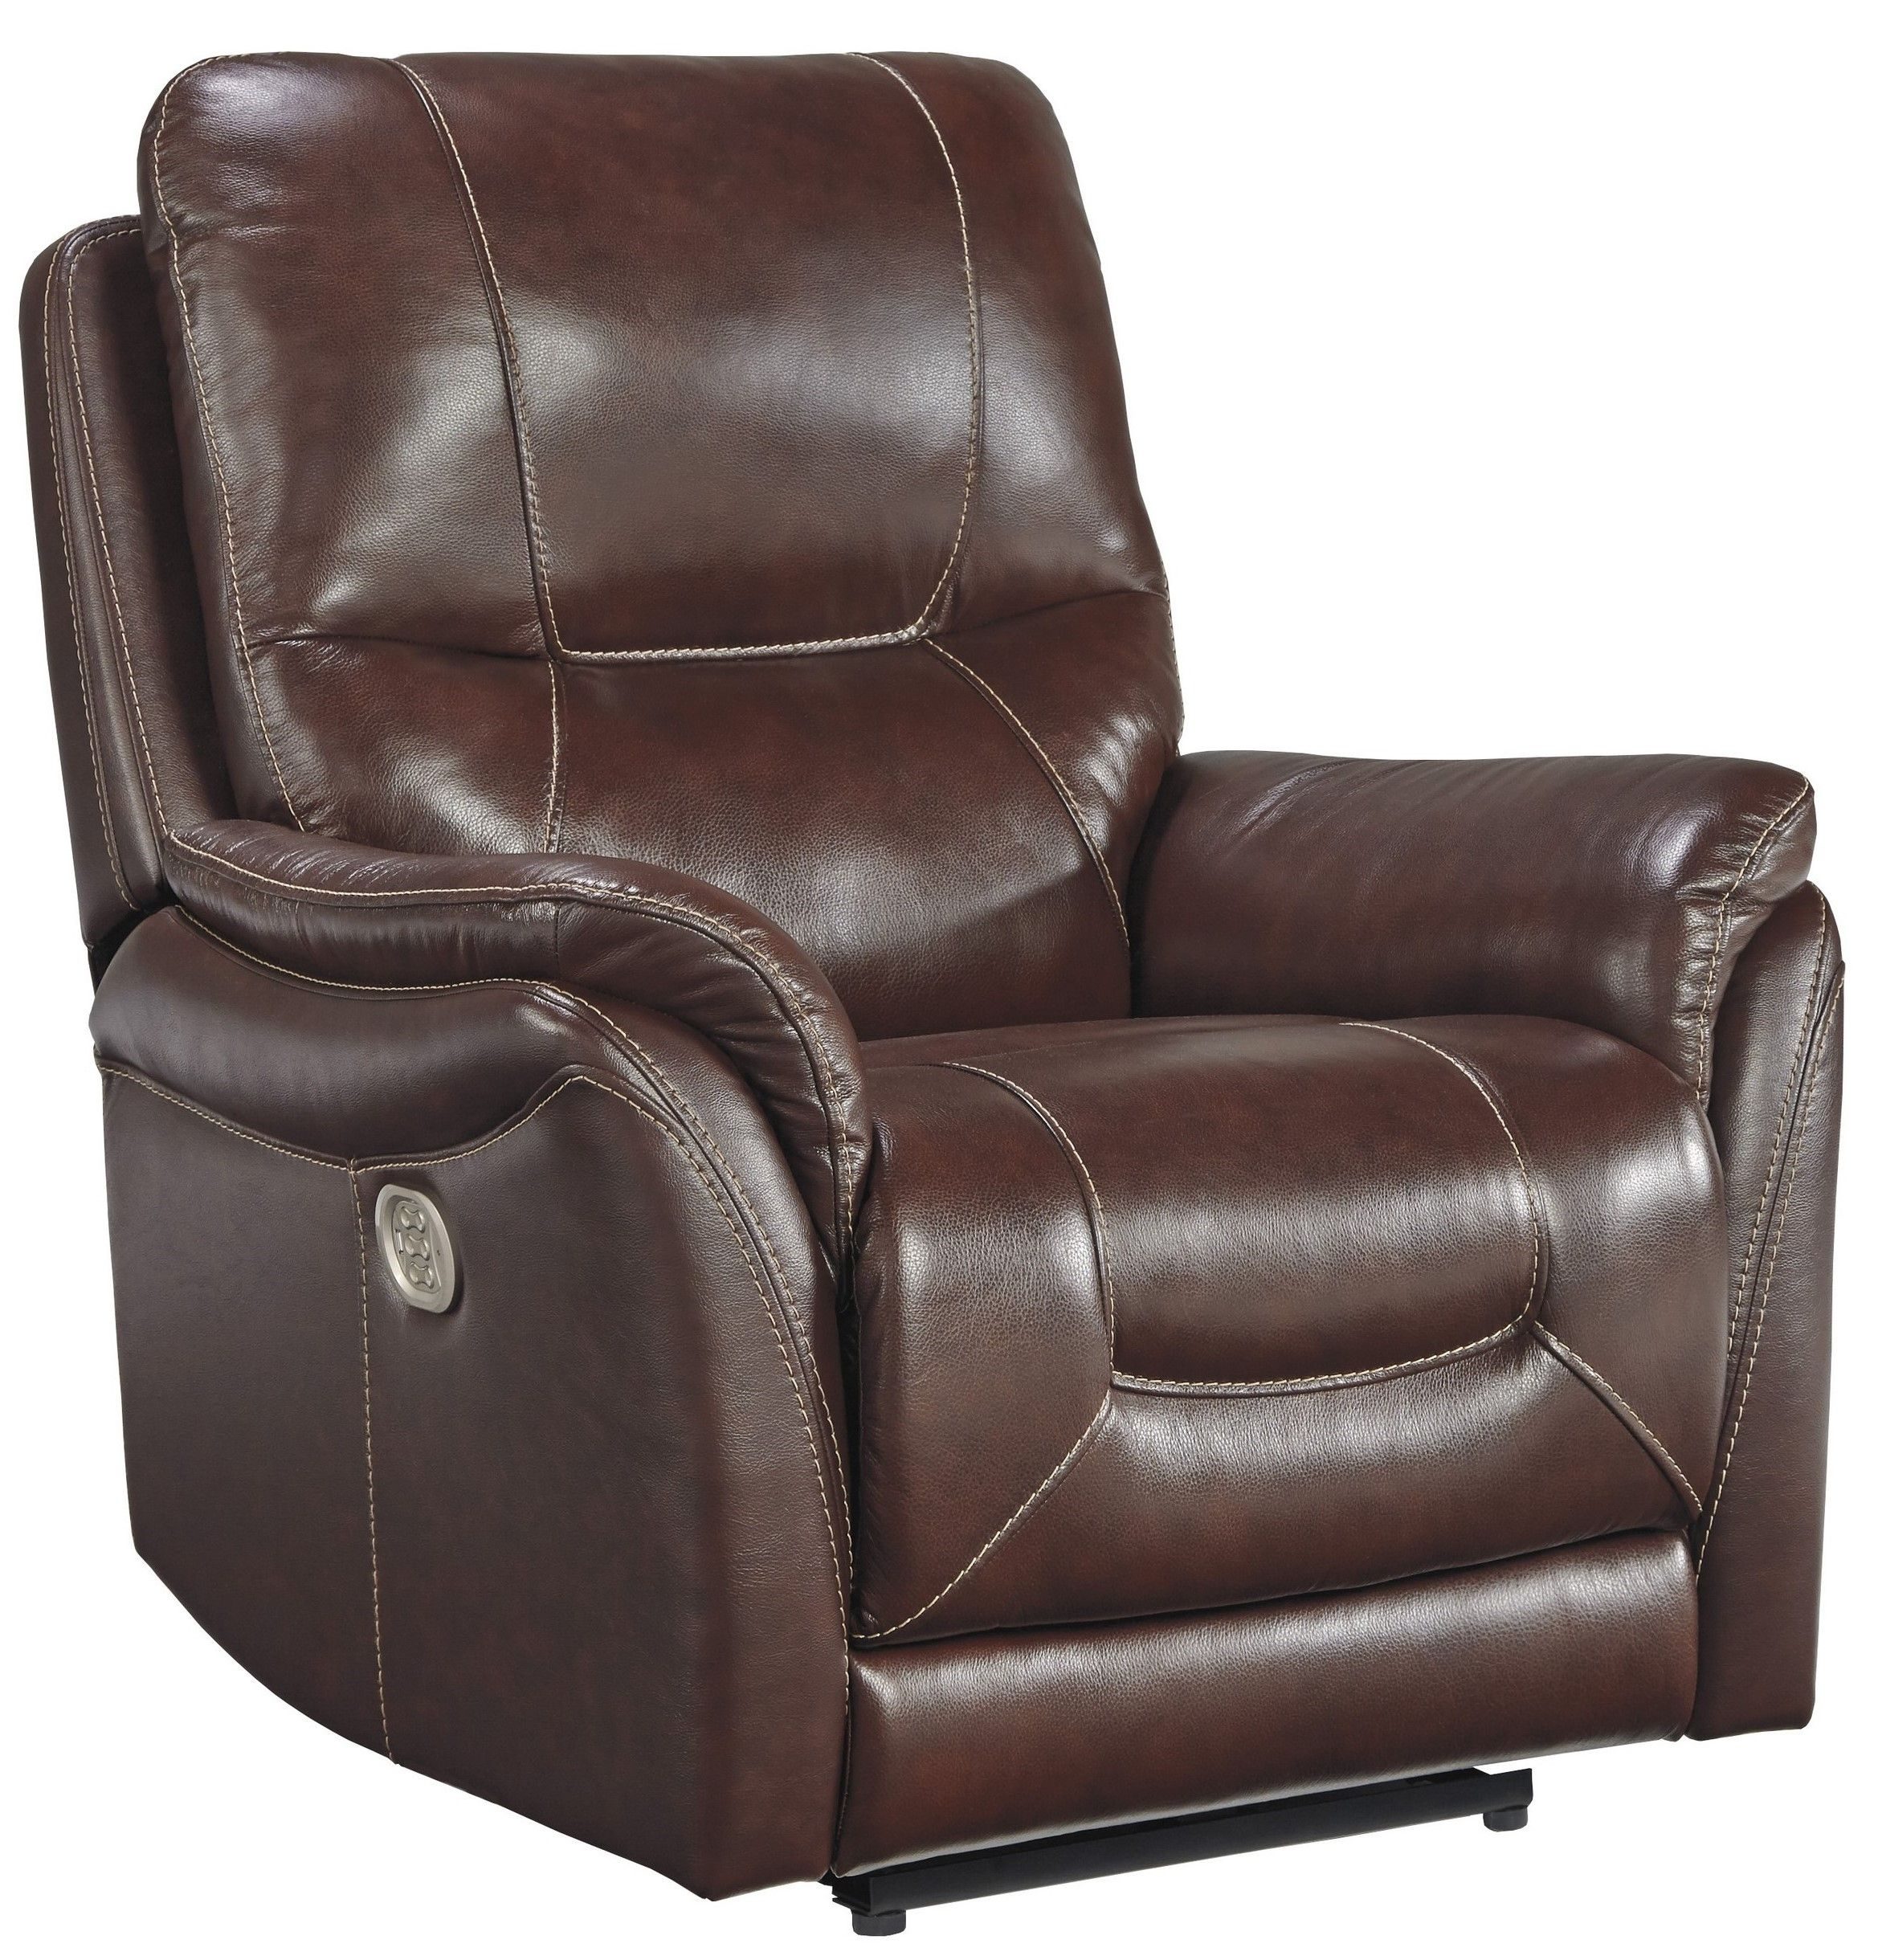 Signature Design By Ashley Stolpen Walnut Power Recliner With Adjustable Headrest 5650313 Goedekers Com Brown Leather Furniture Leather Furniture Power Recliners